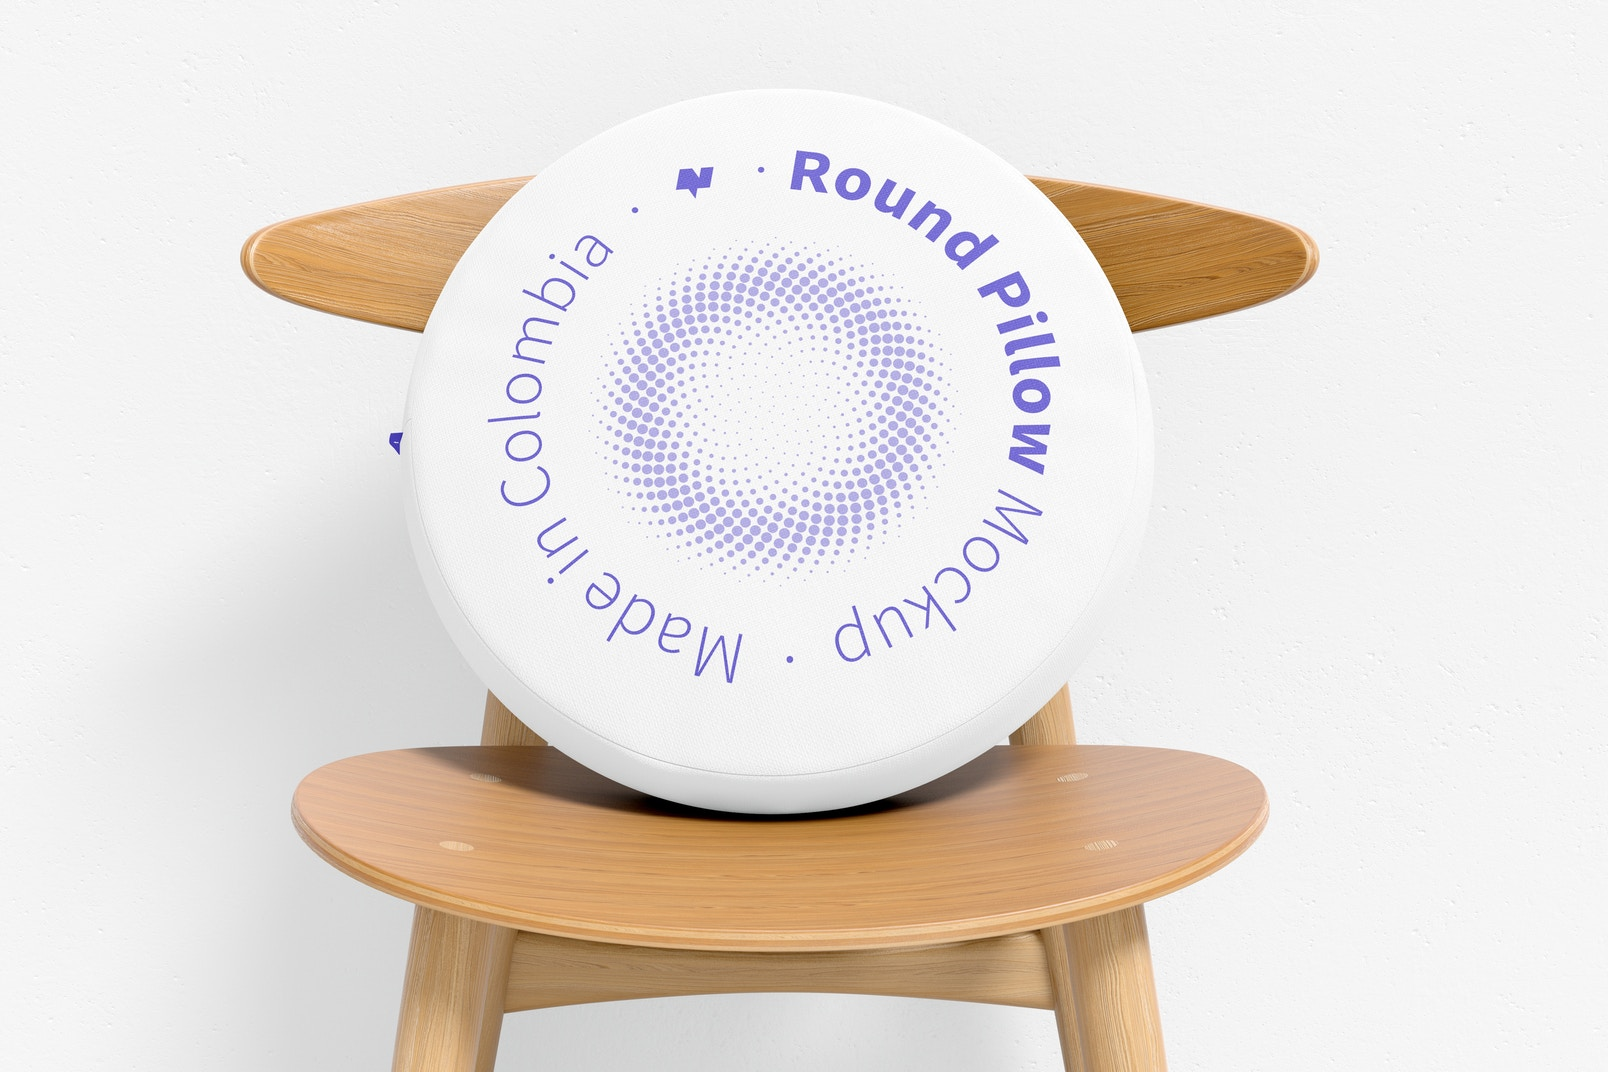 Round Pillow with Chair Mockup